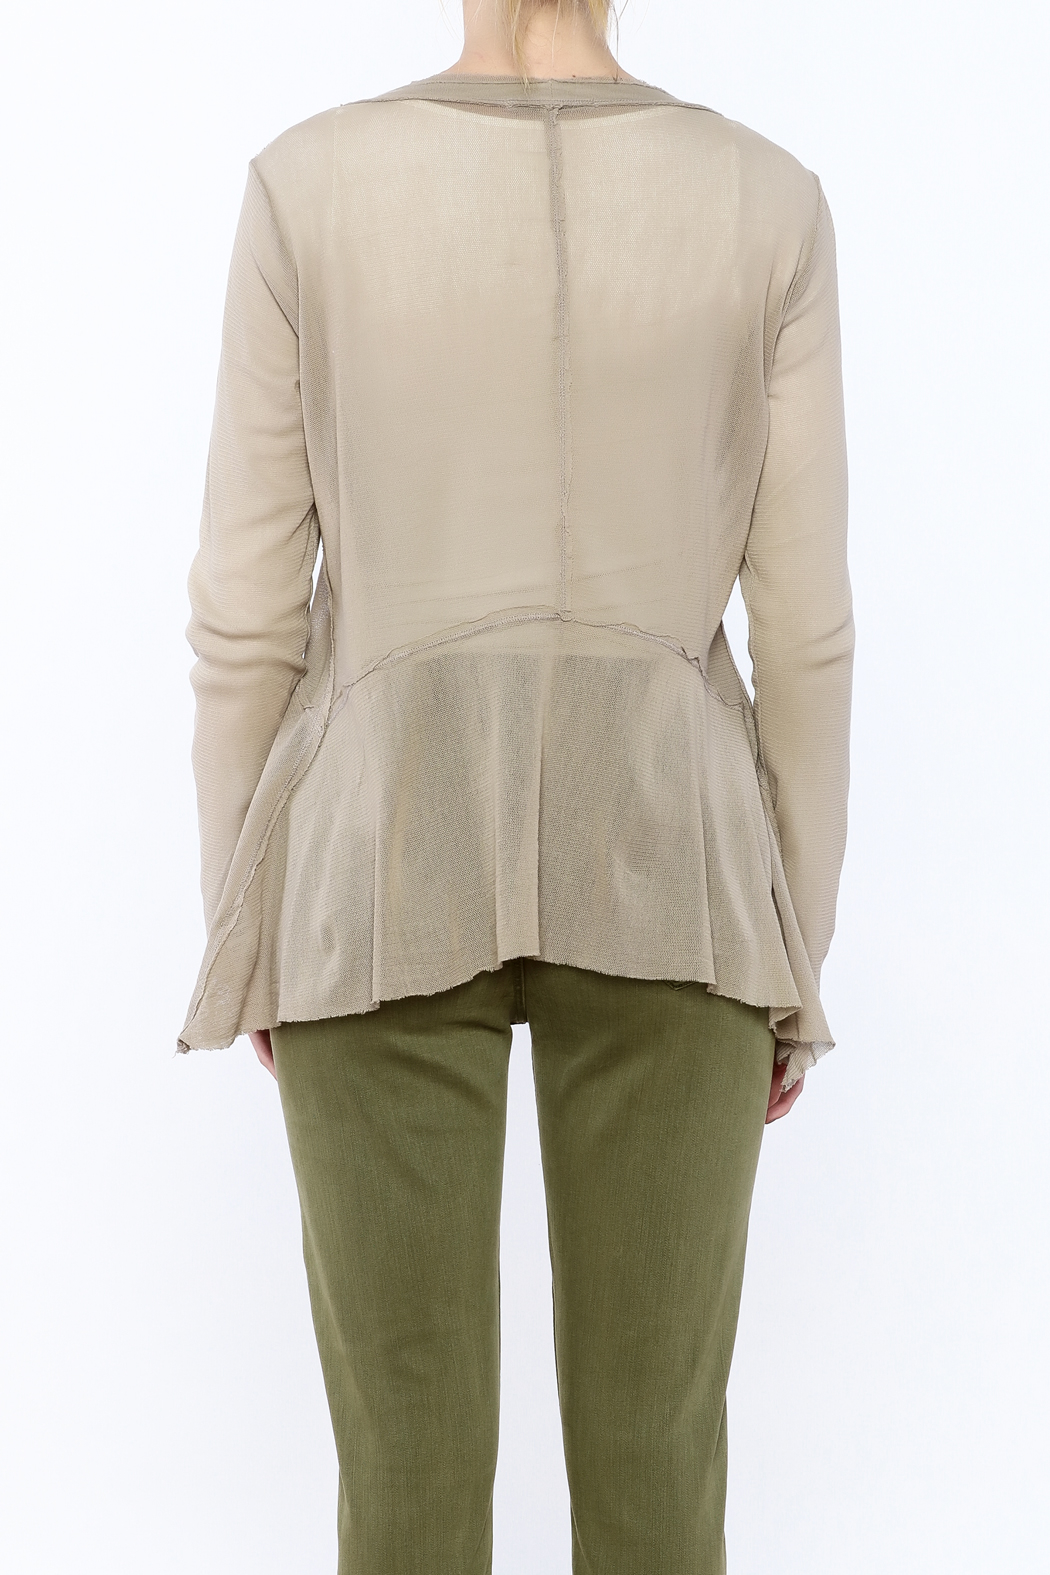 Cut Loose Sheer Beige Jacket - Back Cropped Image